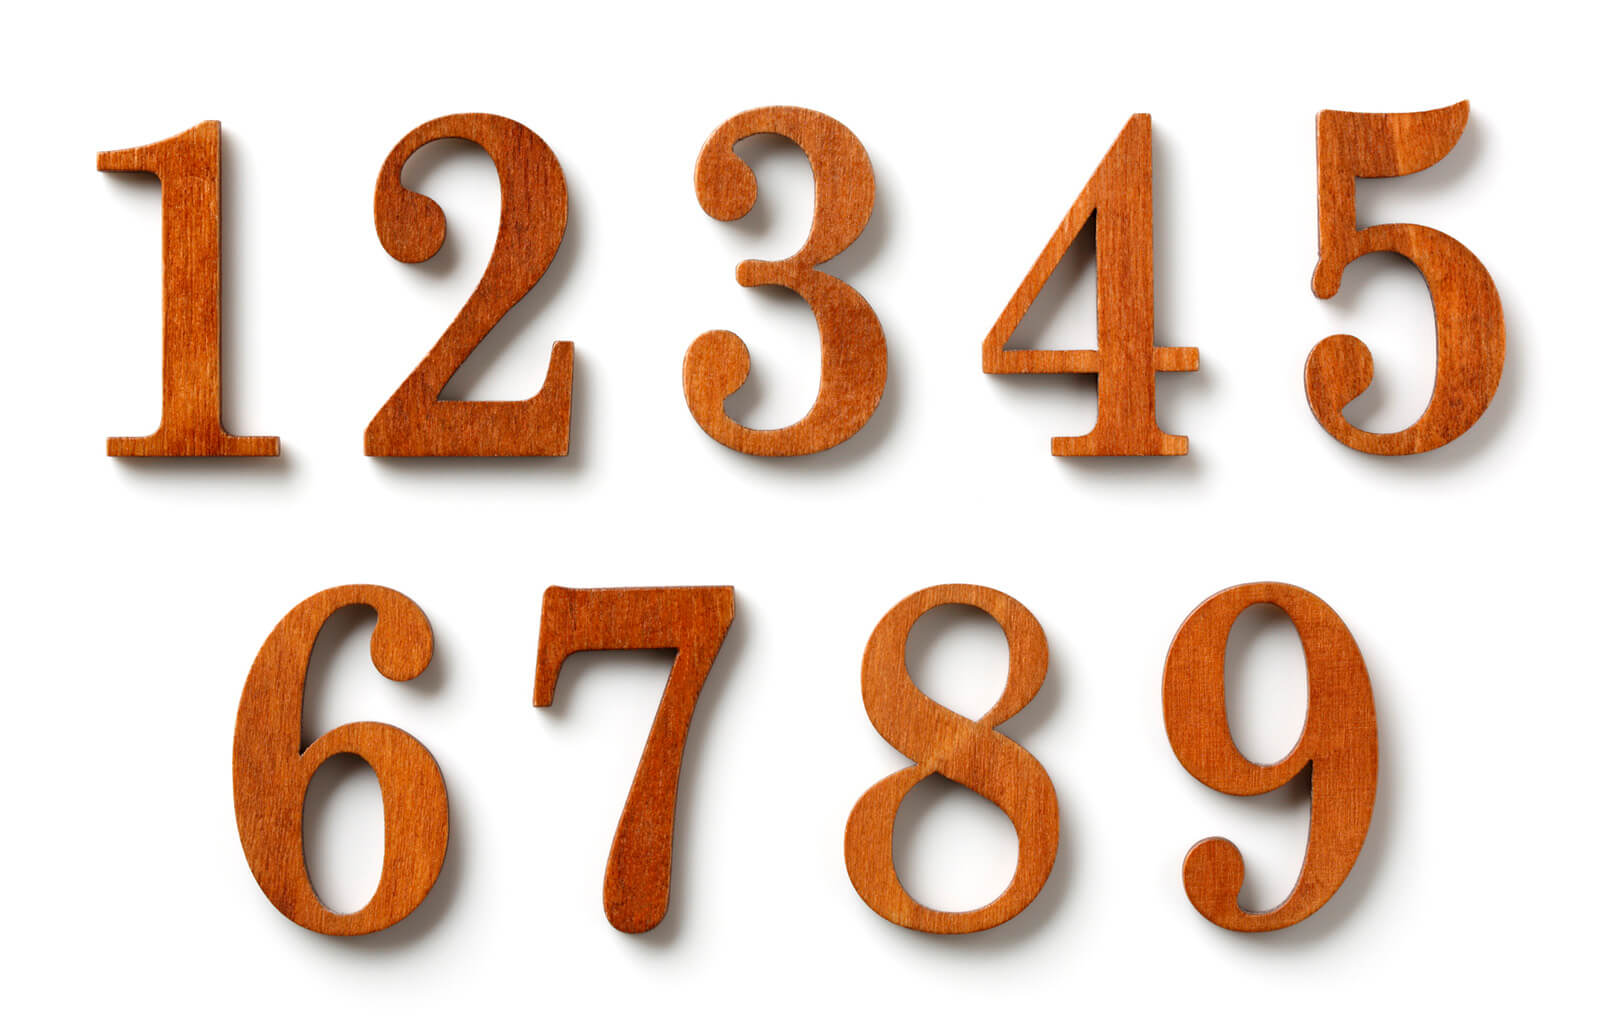 Wooden numbers from 1-9